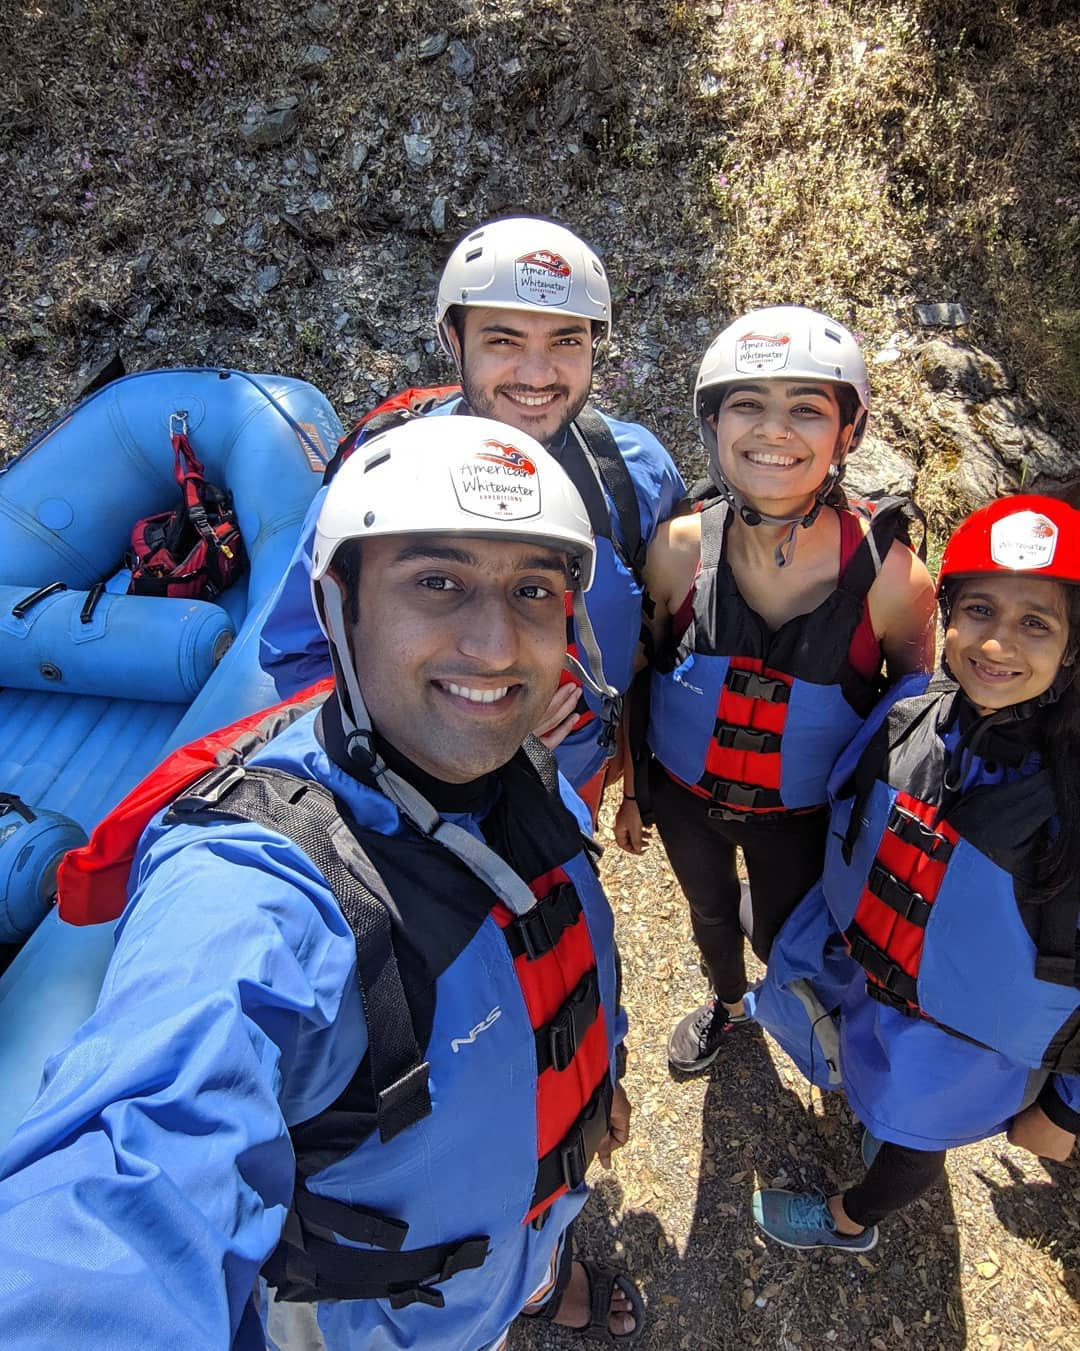 Rafting the whitewaters